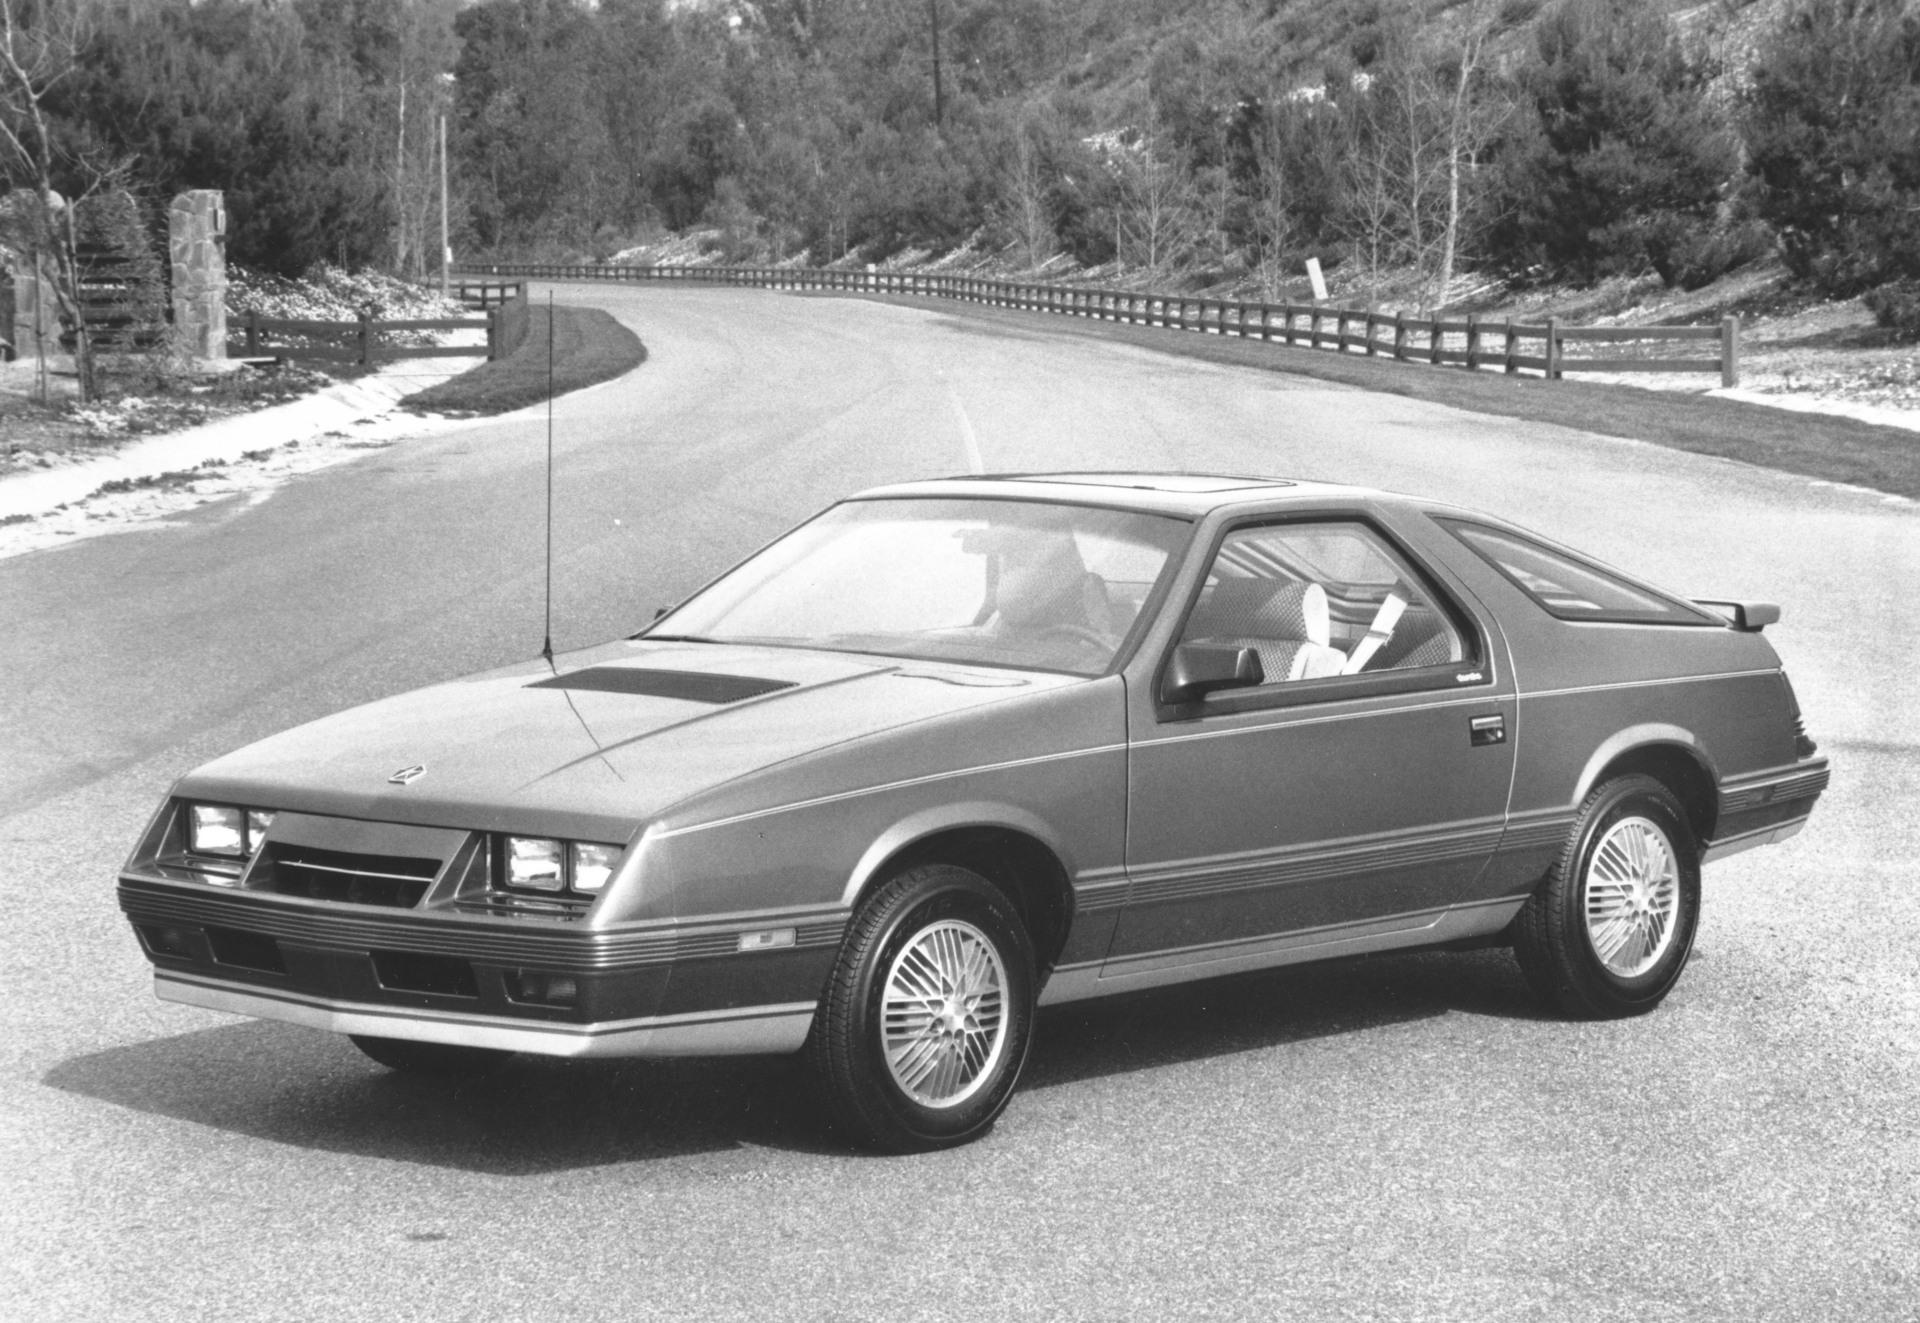 1984 Chrysler Laser #8